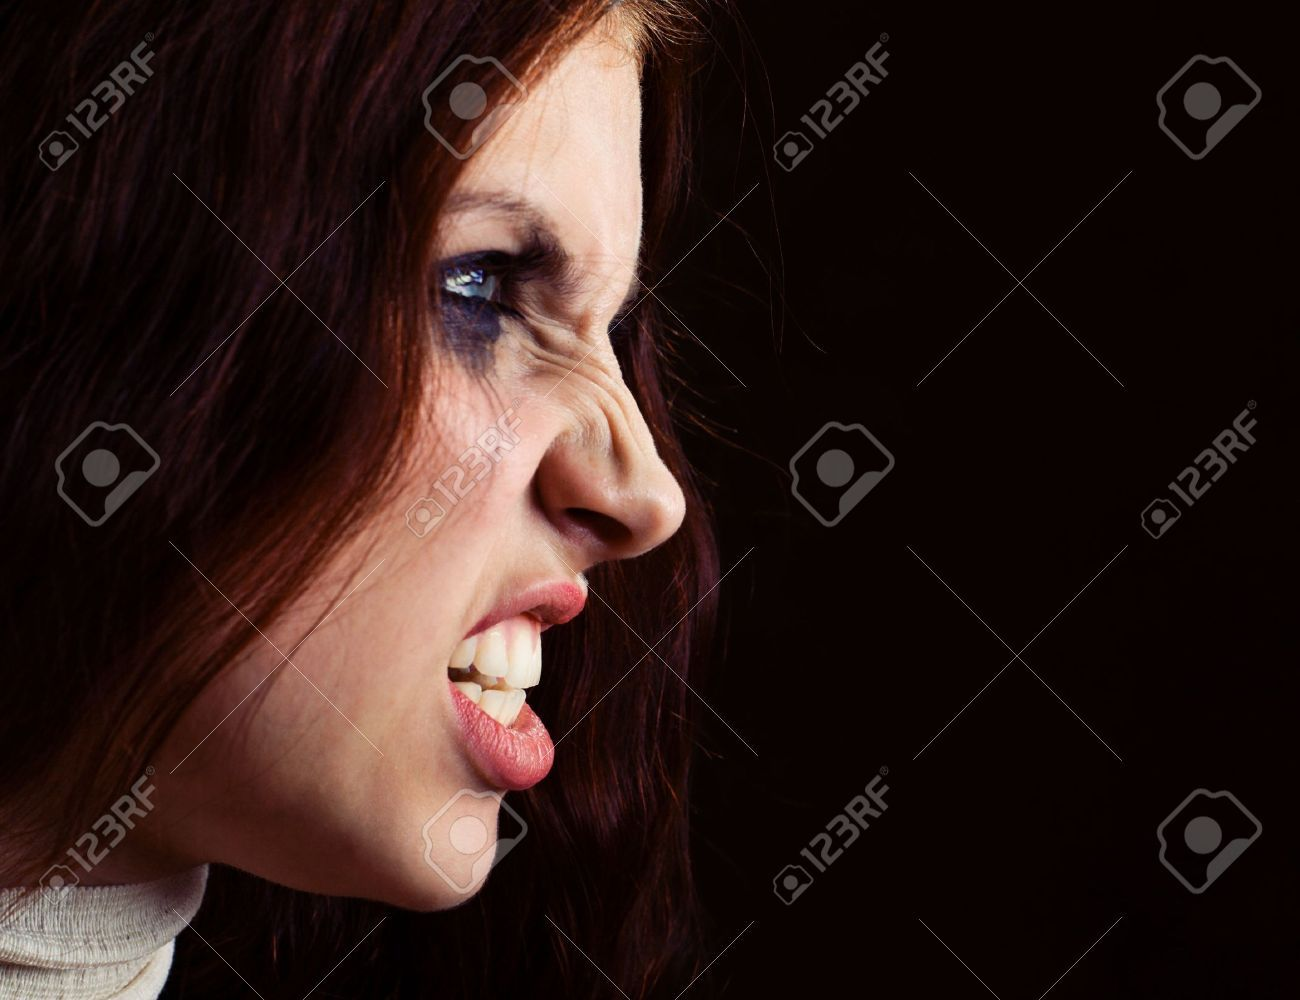 Angry Girl Angry Women Female Profile